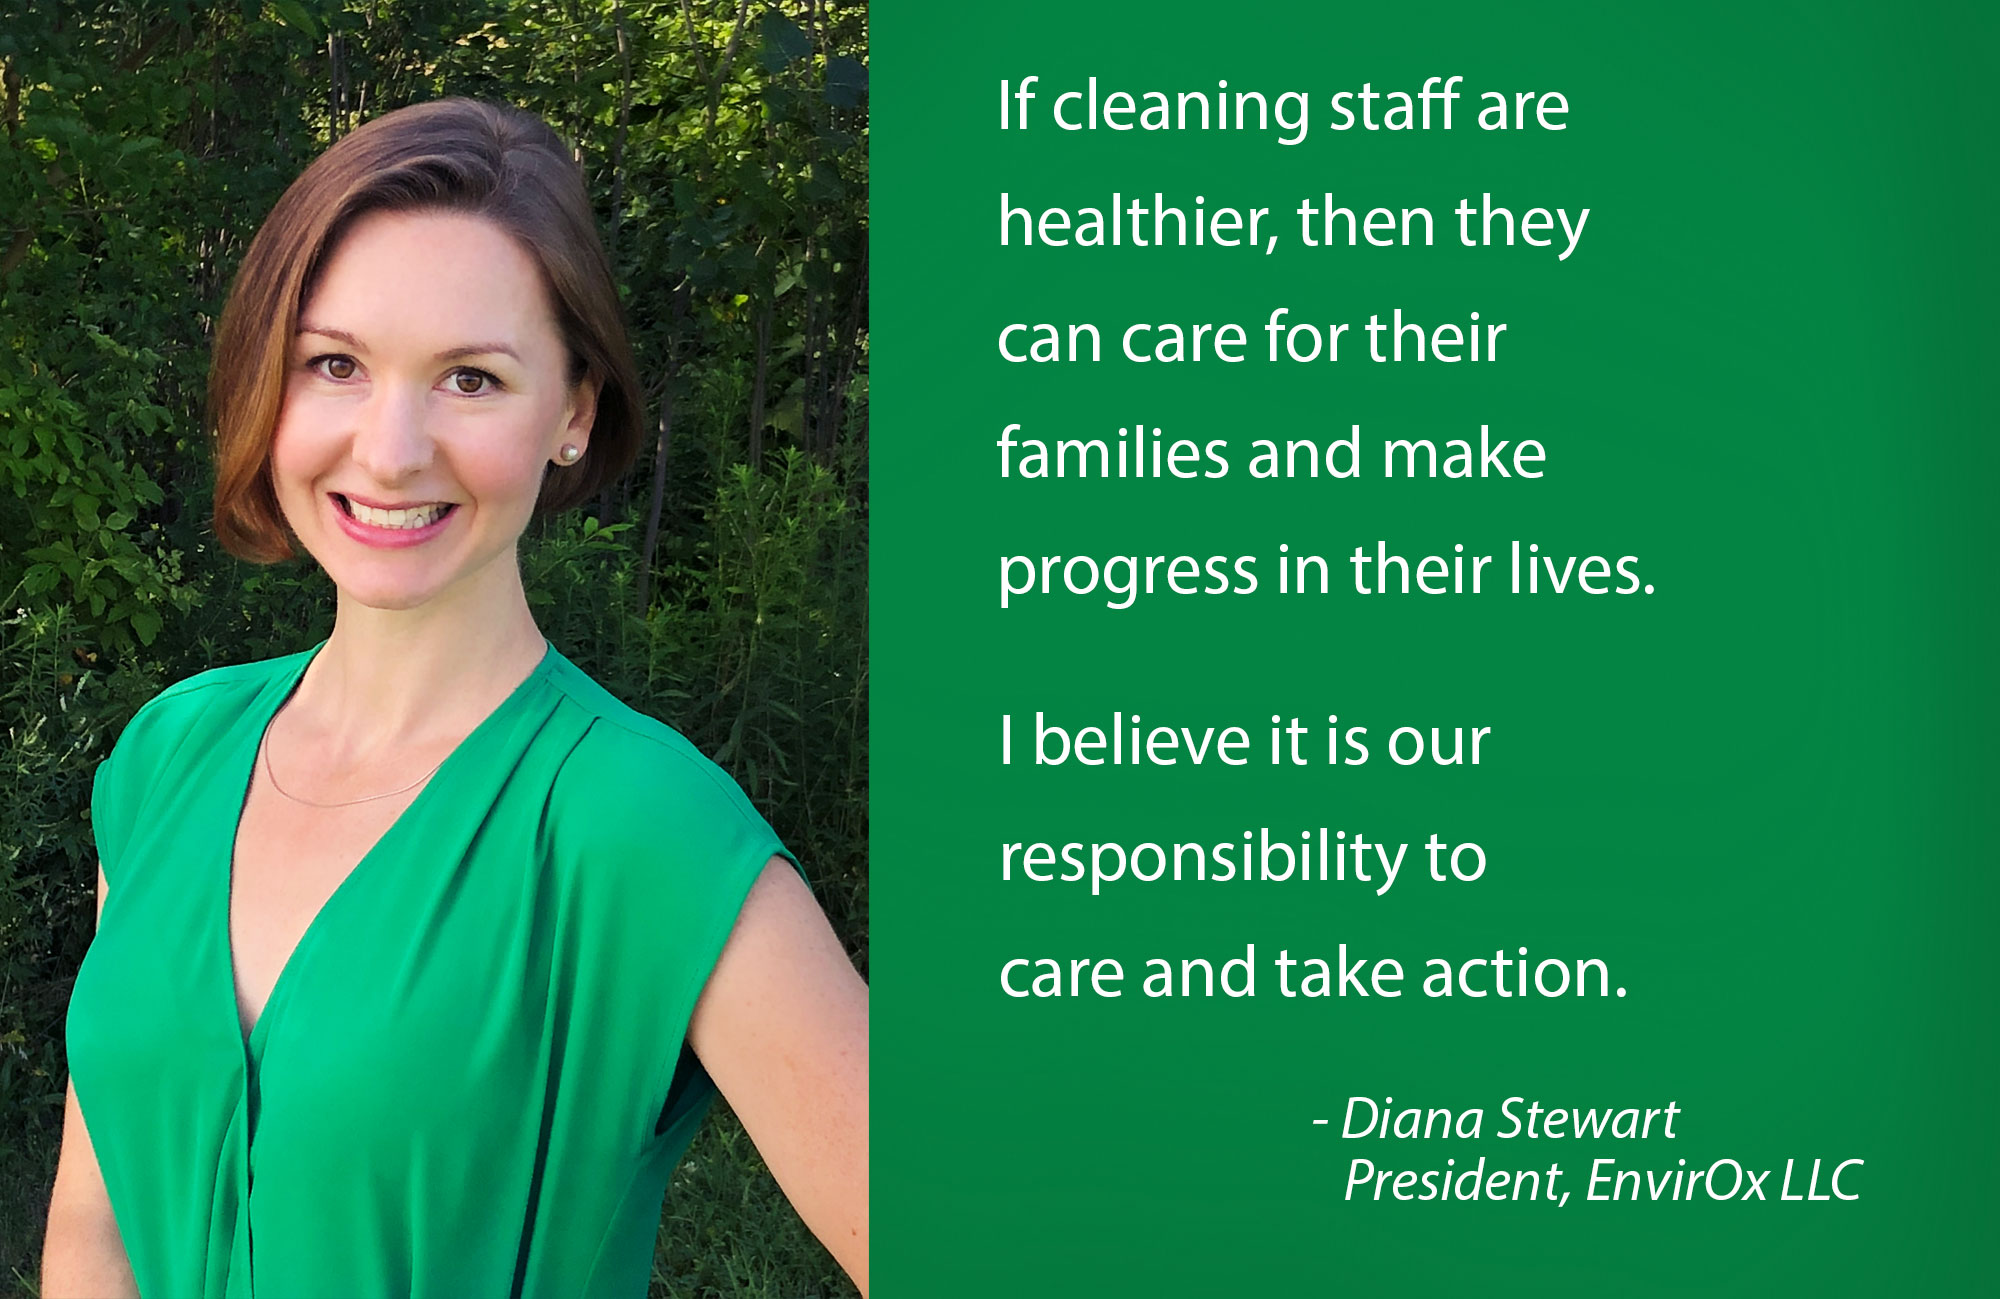 If cleaning staff are healthier, then they can care for their families and make progress in their lives. I believe it is our responsibility to care and take action. - Diana Stewart    President, EnvirOx LLC